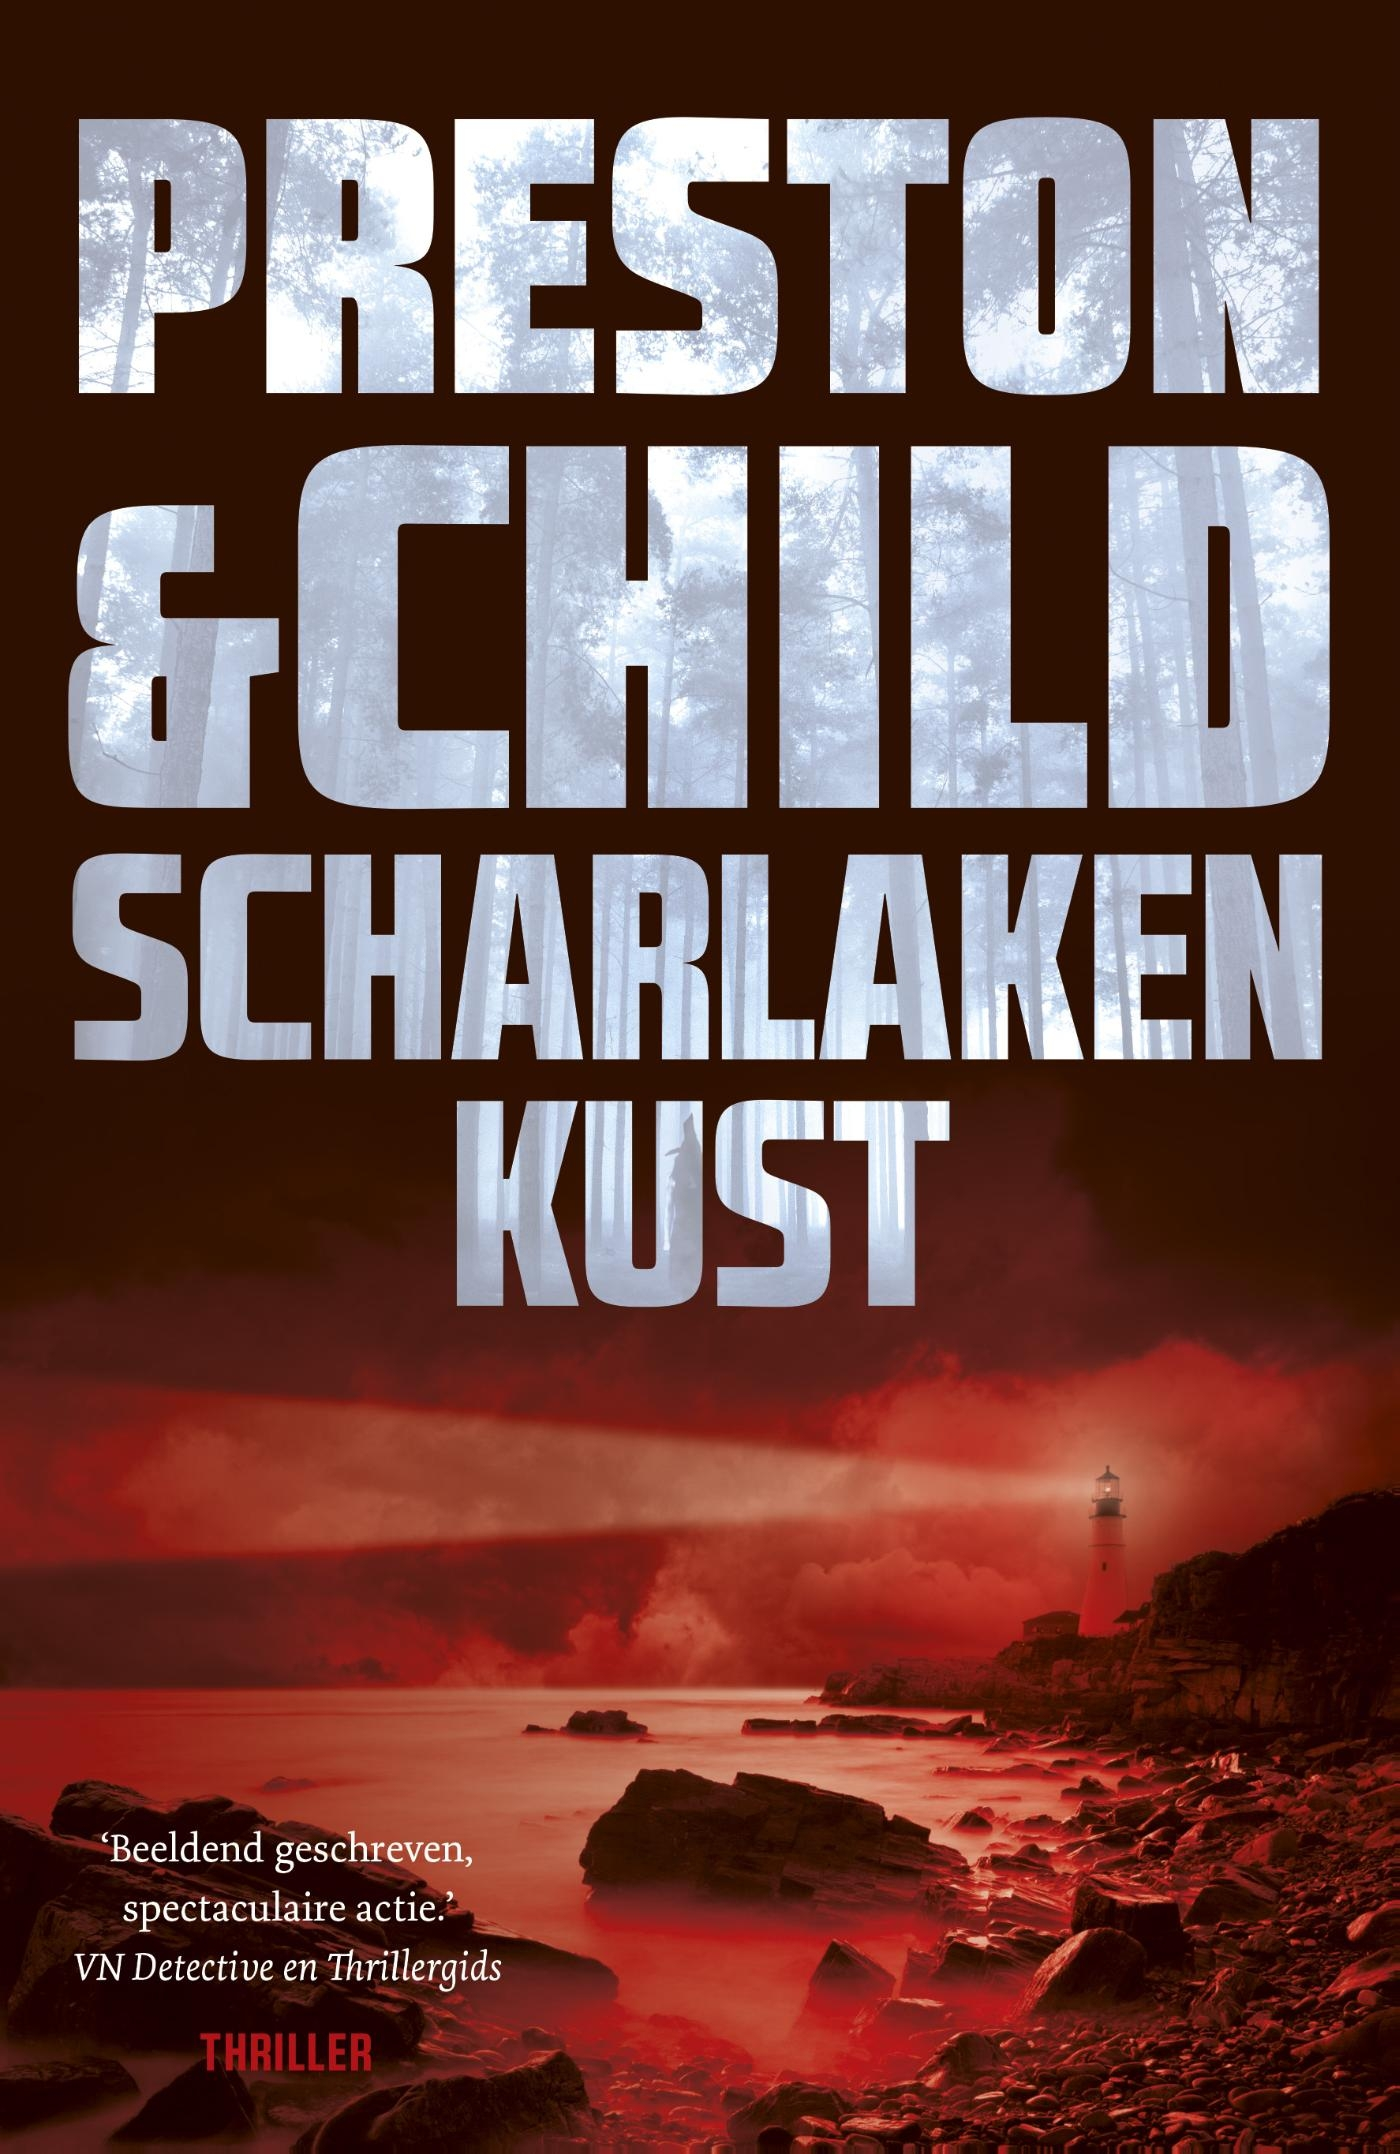 Scharlaken kust – Preston & Child